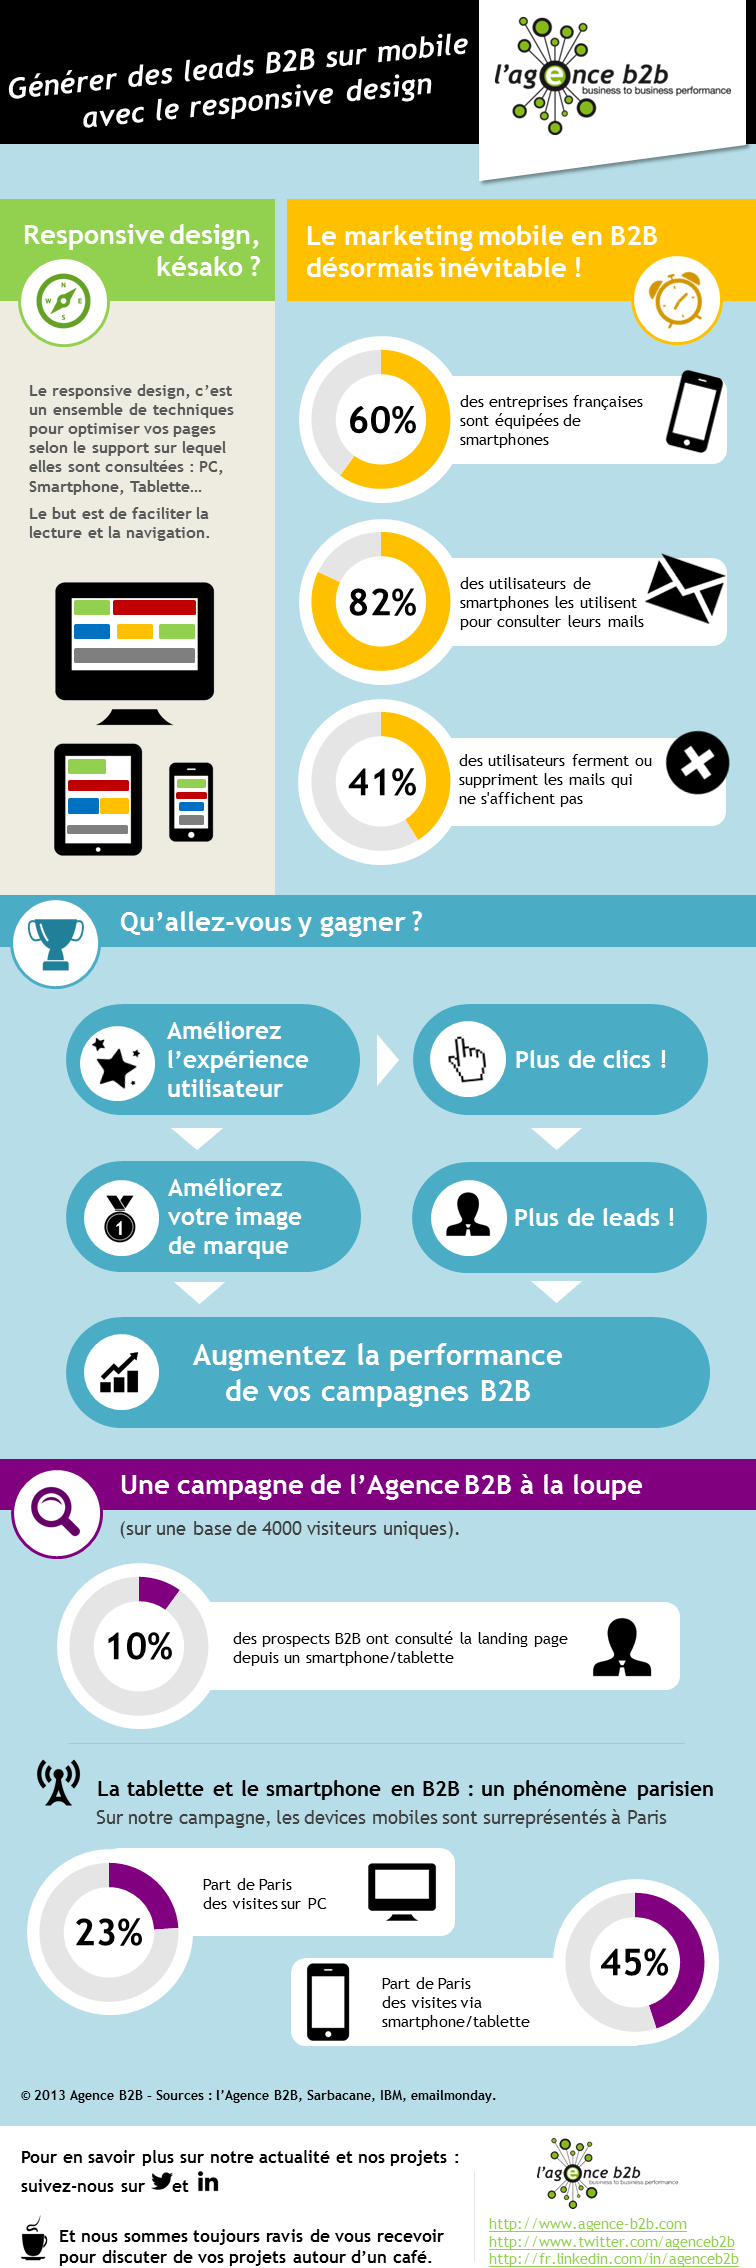 infographie responsive design